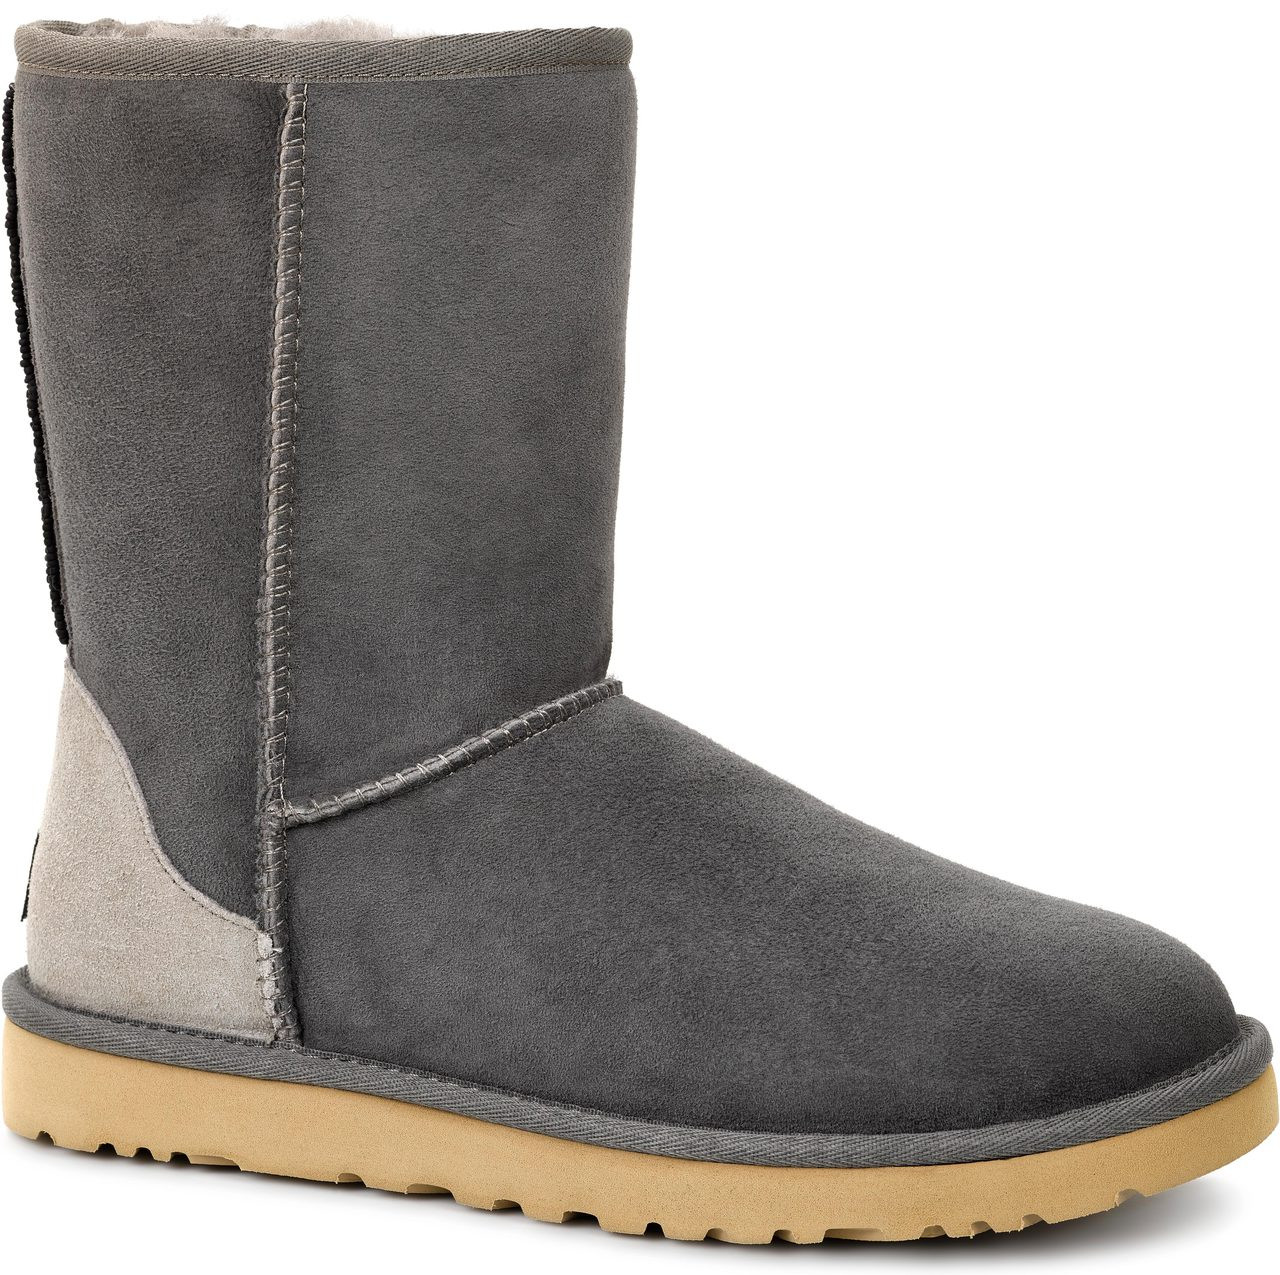 ... Casual Boots; UGG Women's Classic Short Serape Beads. Charcoal ·  Charcoal · Chocolate · Navy